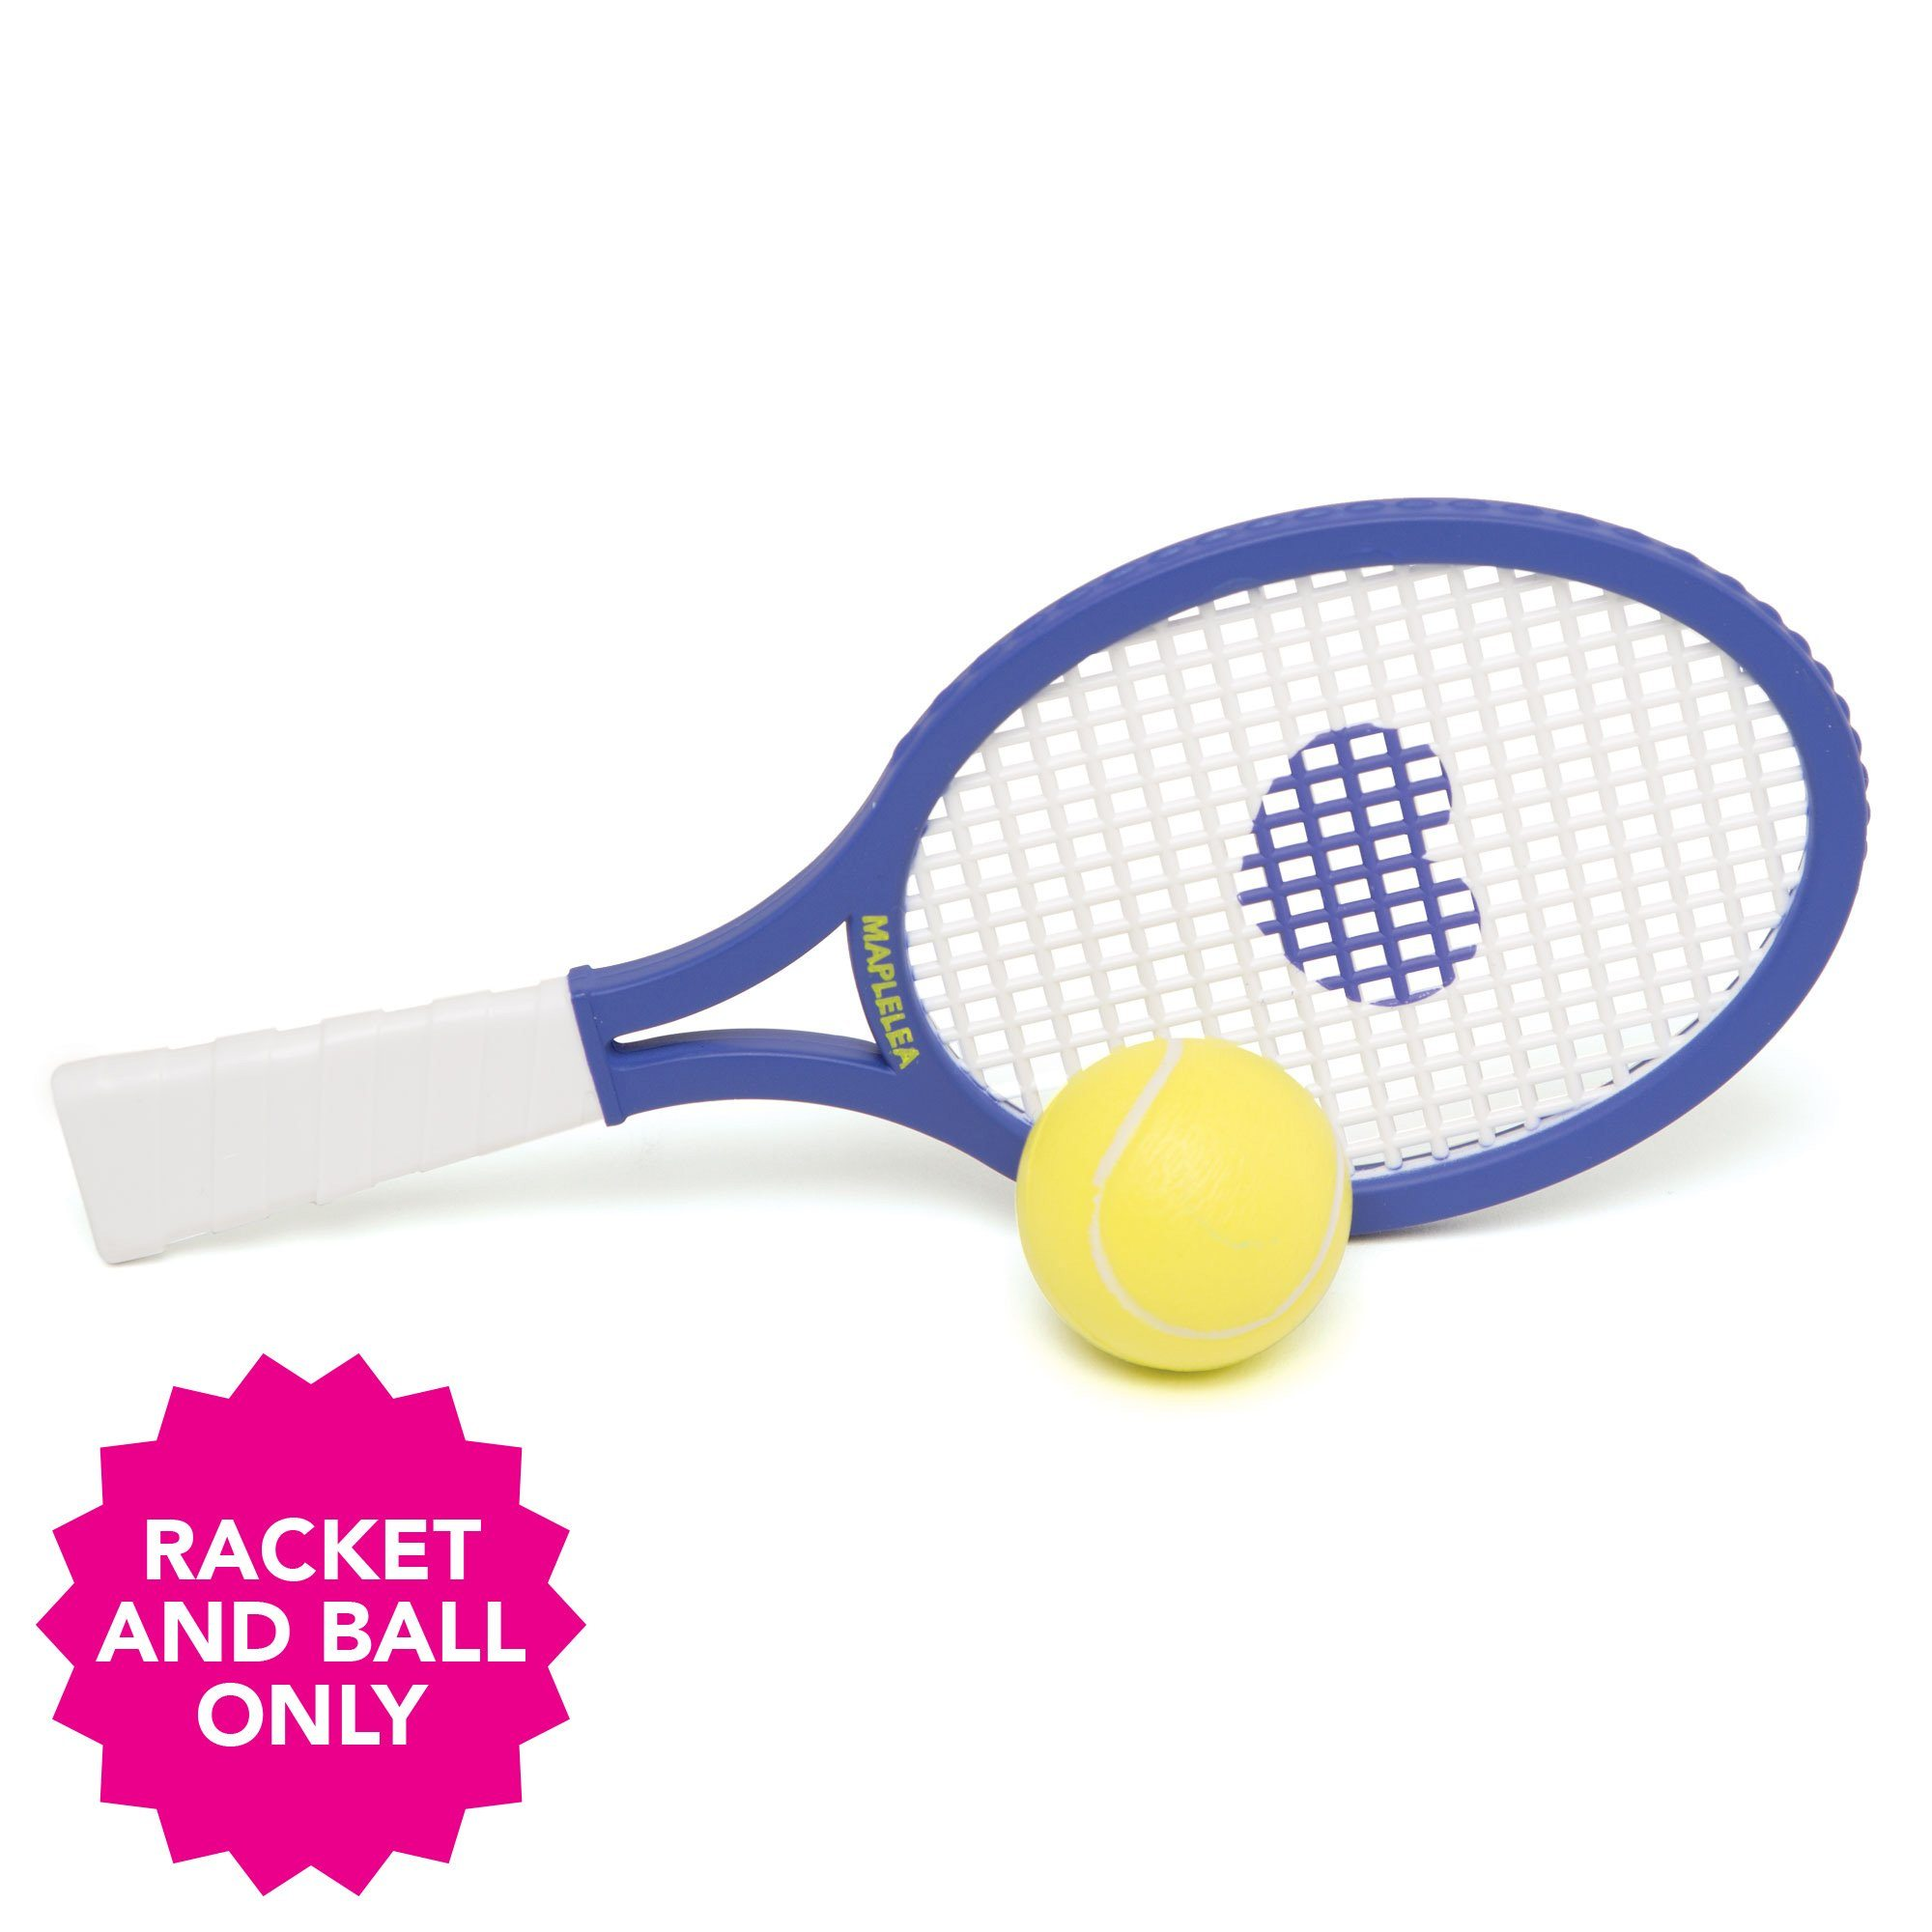 XKM93AD - Tennis Racquet and Ball Only